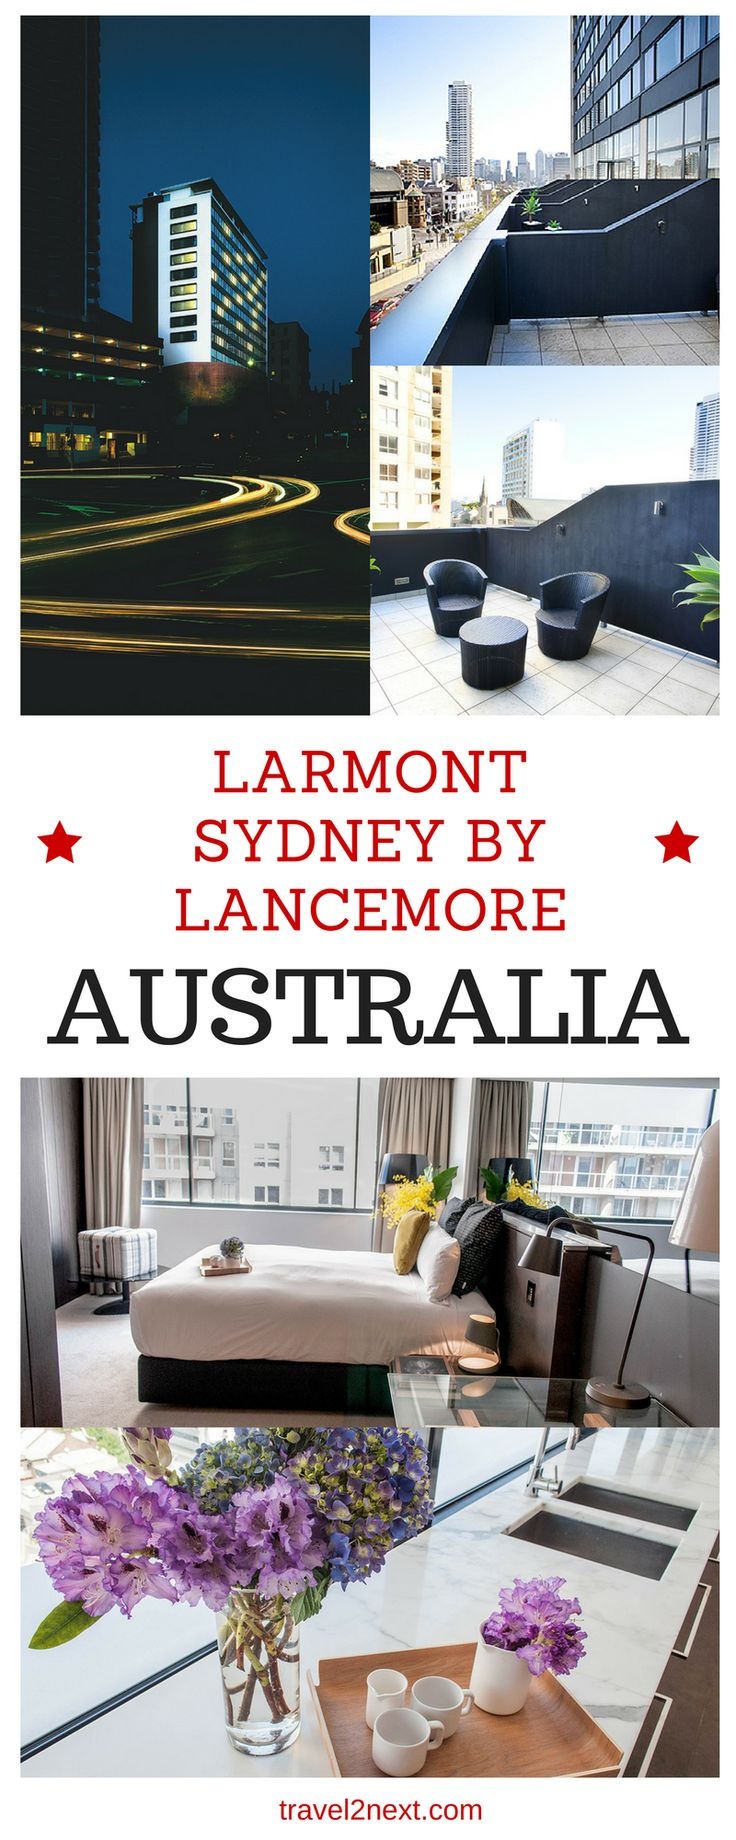 Larmont Sydney by Lancemore. If you're looking for a luxury hotel in Sydney that is close to the city but doesn't have the feel of a large international chain, Larmont Sydney fits the bill.